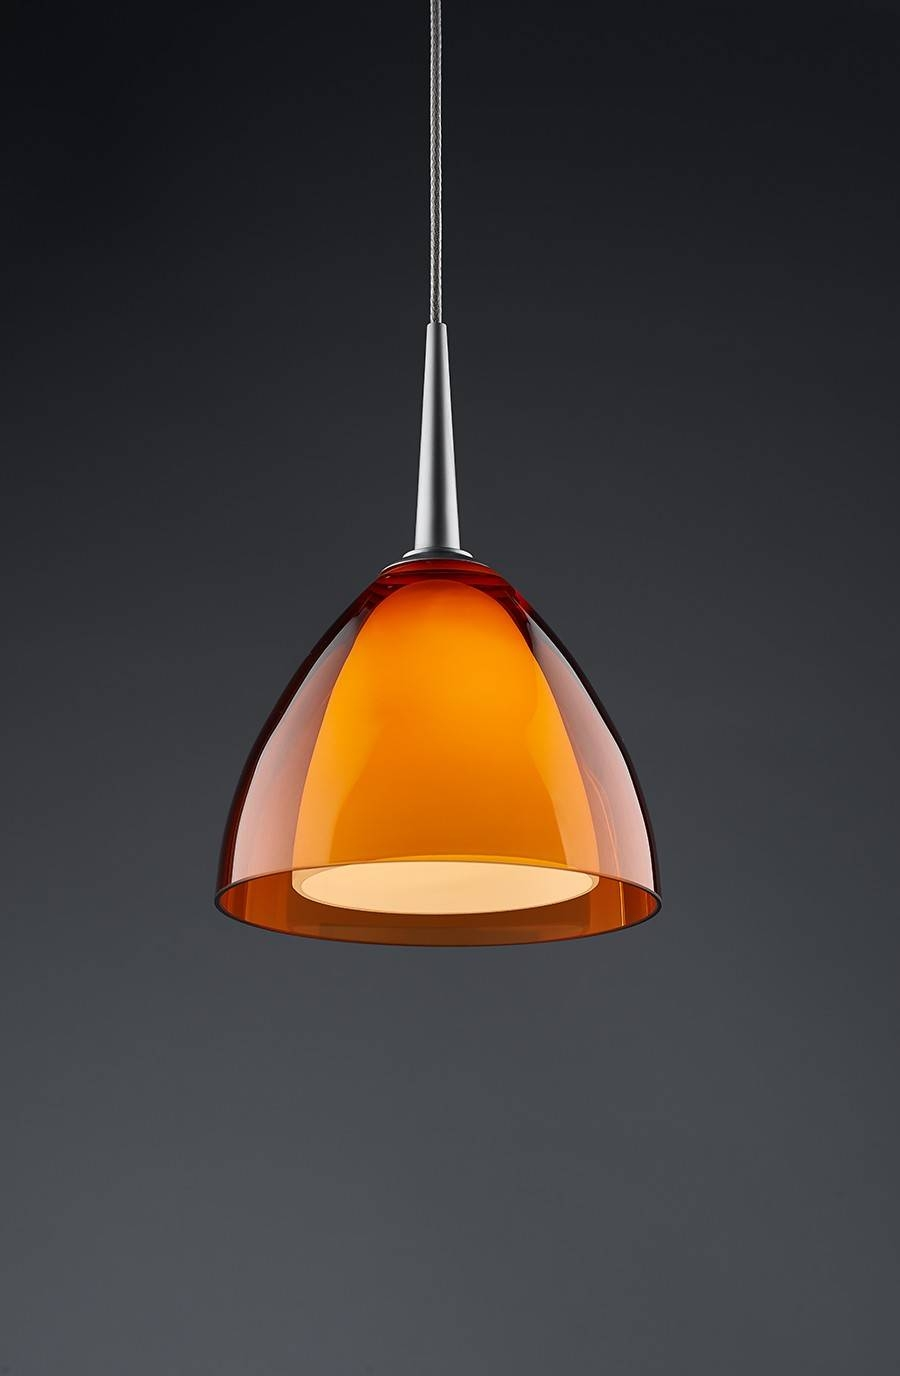 Bruck Lighting Rainbow 2 Pendant Orange Glass 221725 inside Orange Glass Pendant Lights (Image 3 of 15)